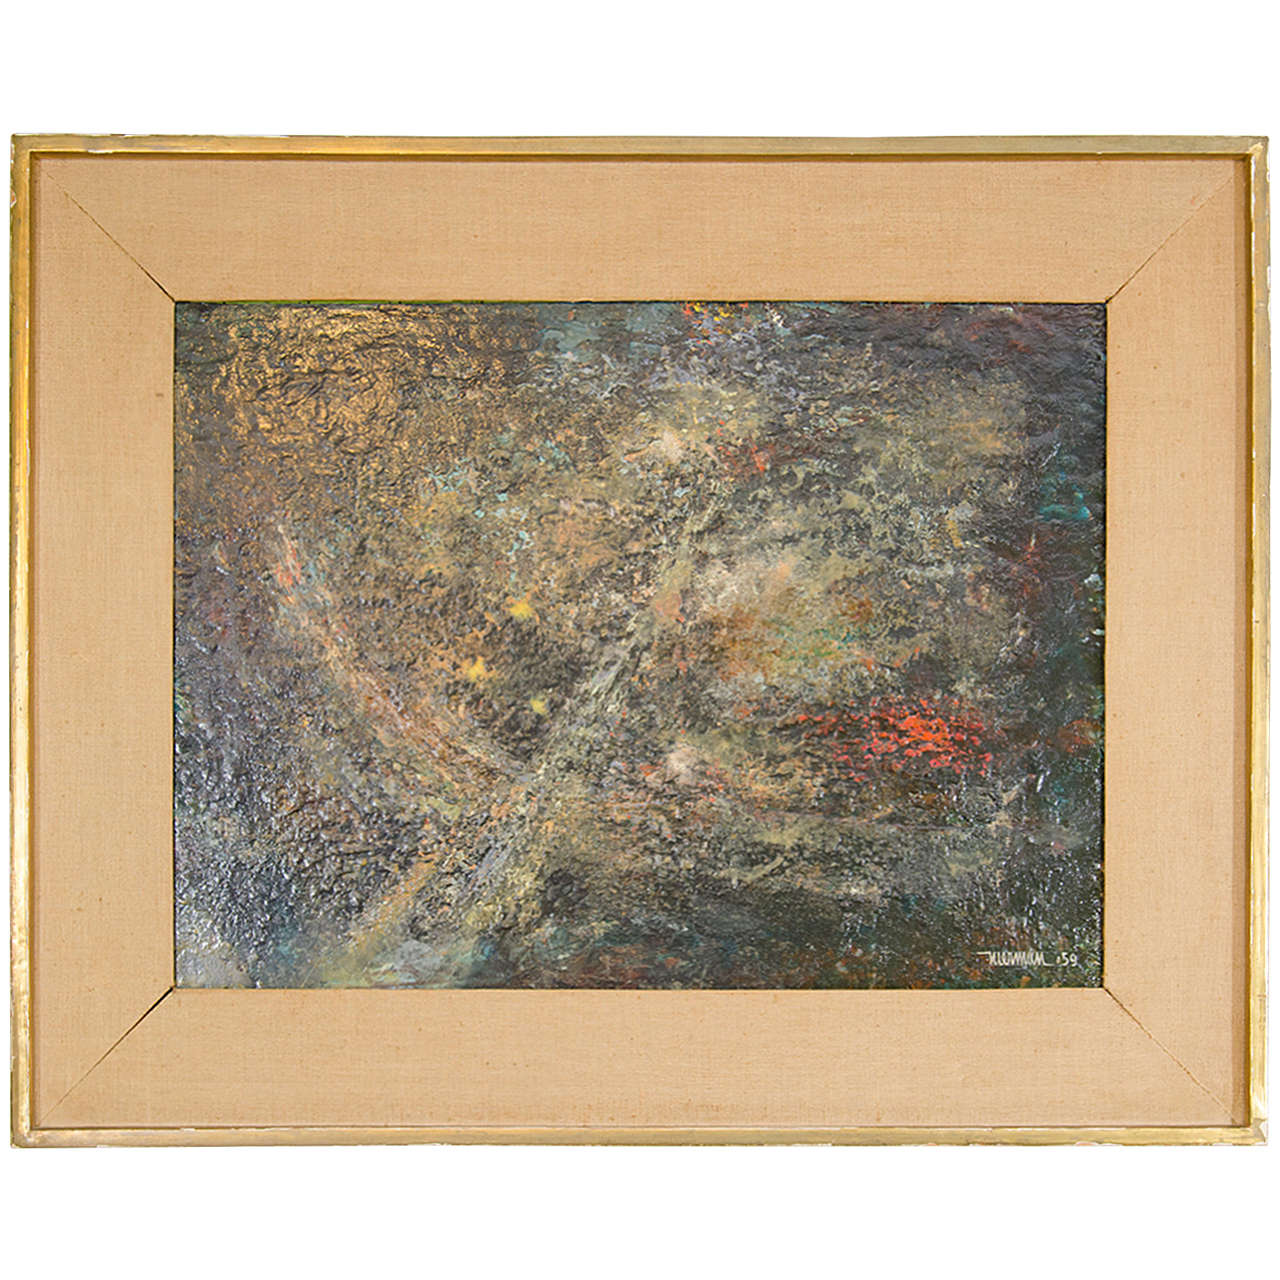 Leonardo Nierman Large Abstract Painting